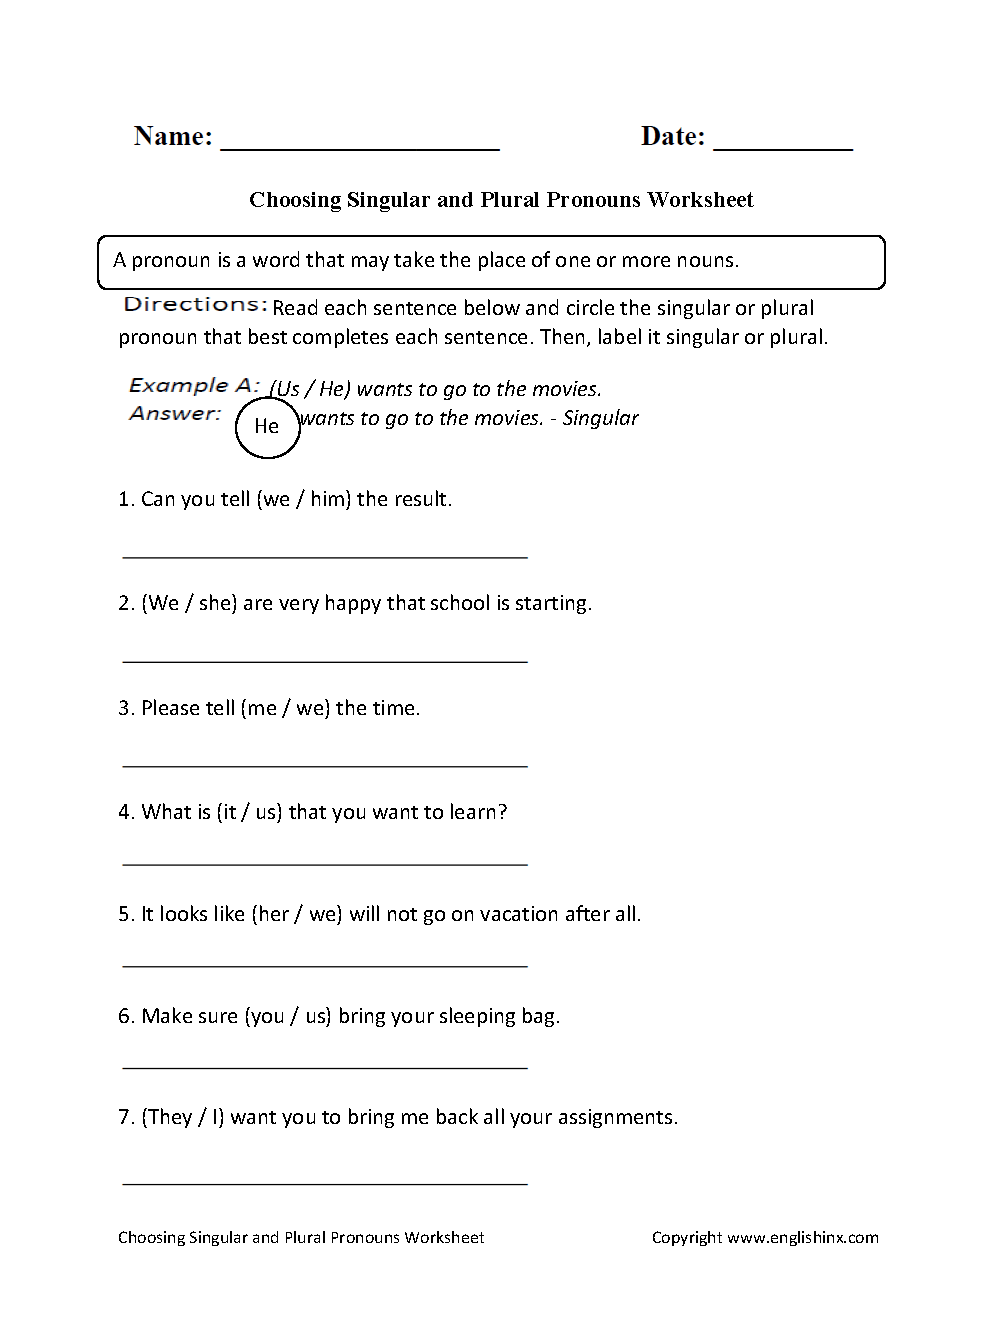 Pronouns Worksheets  Singular and Plural Pronouns Worksheets education, multiplication, alphabet worksheets, and grade worksheets Noun And Pronoun Worksheets For Middle School 1331 x 1003